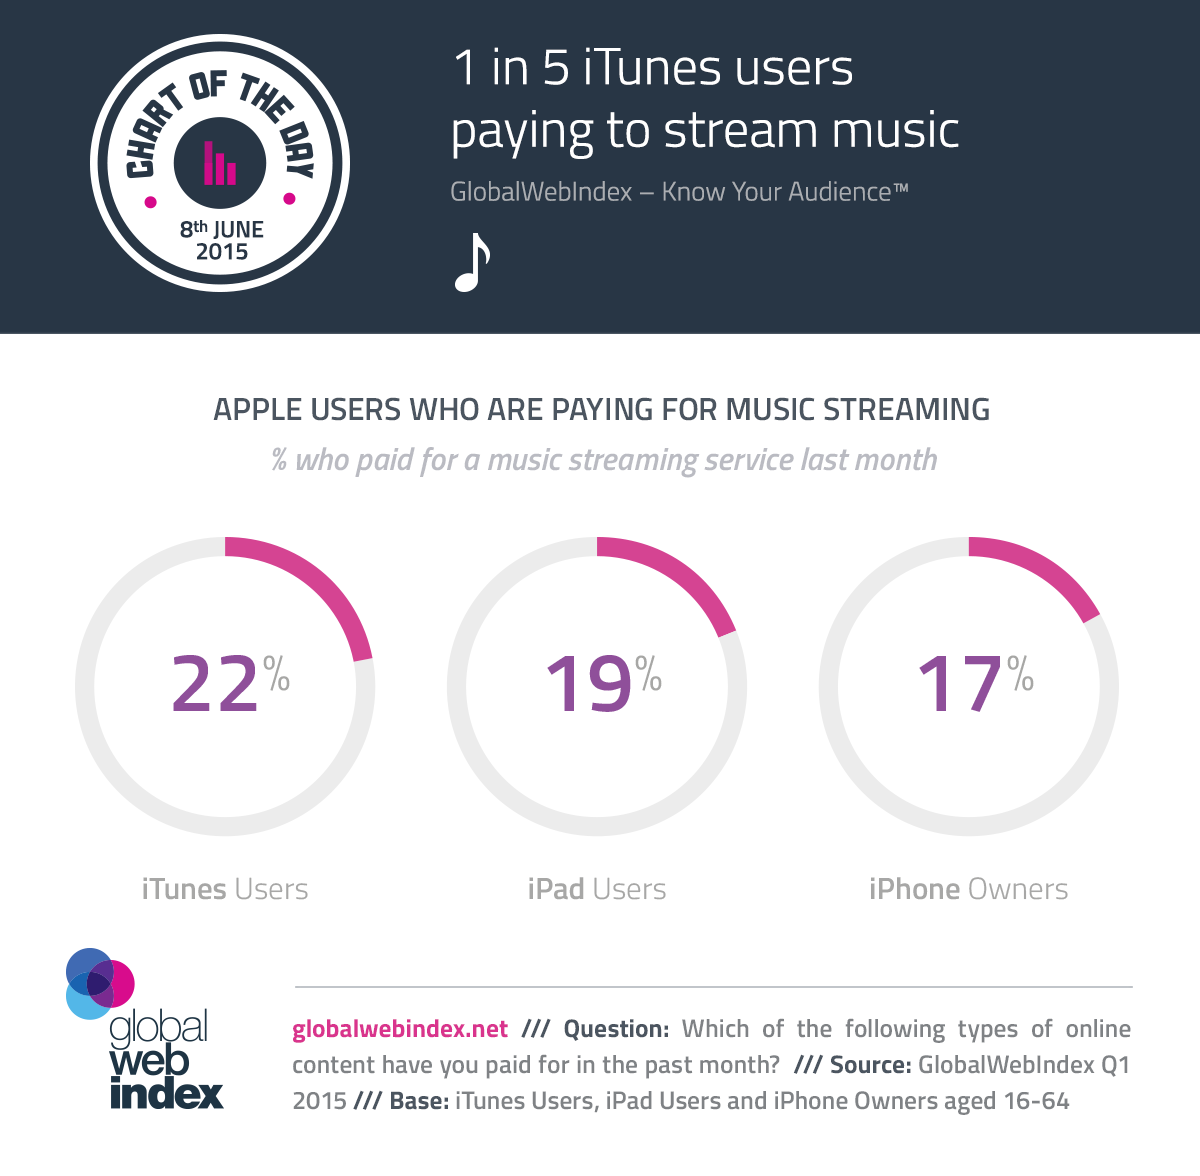 8th-June-2015-1-in-5-iTunes-users-paying-to-stream-music